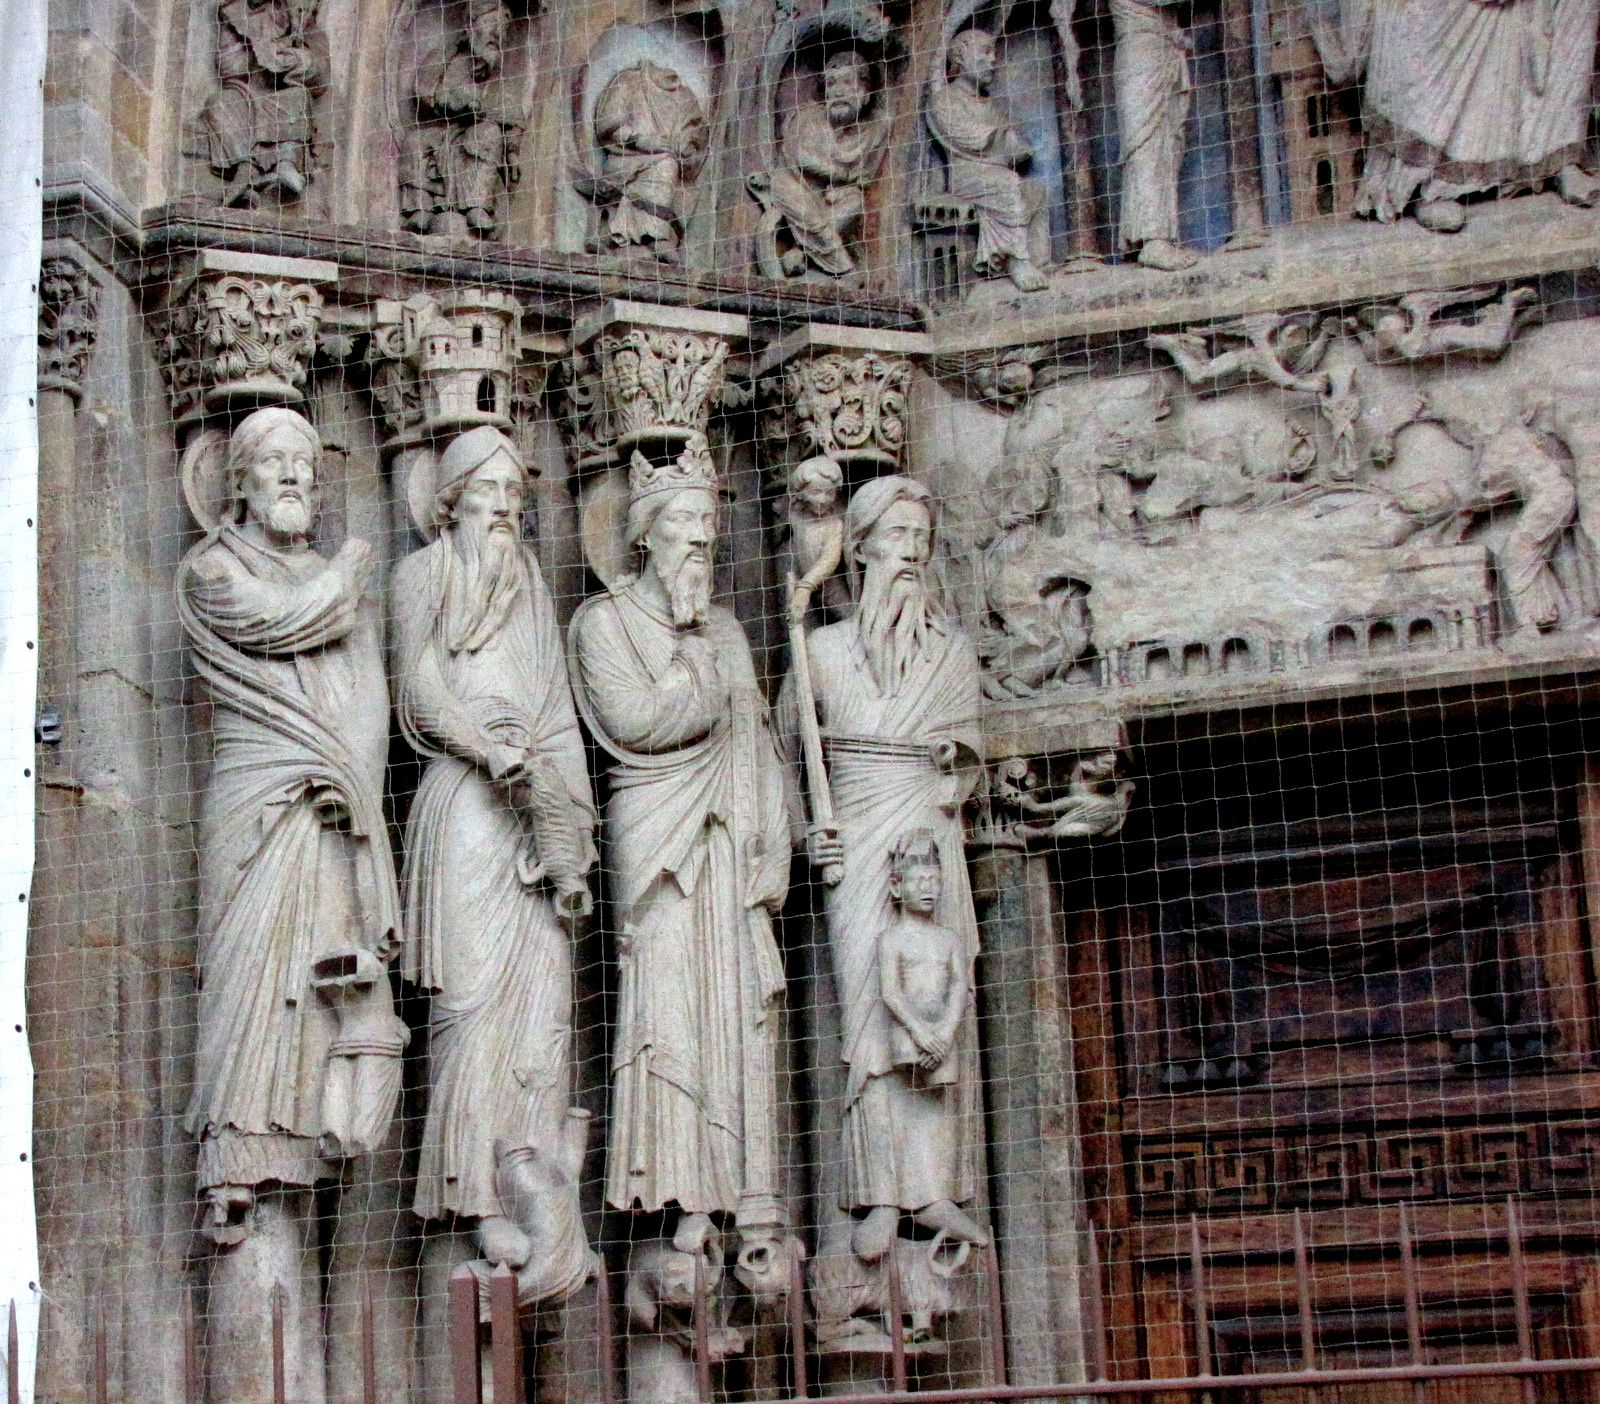 La cathédrale de Senlis, la façade occidentale